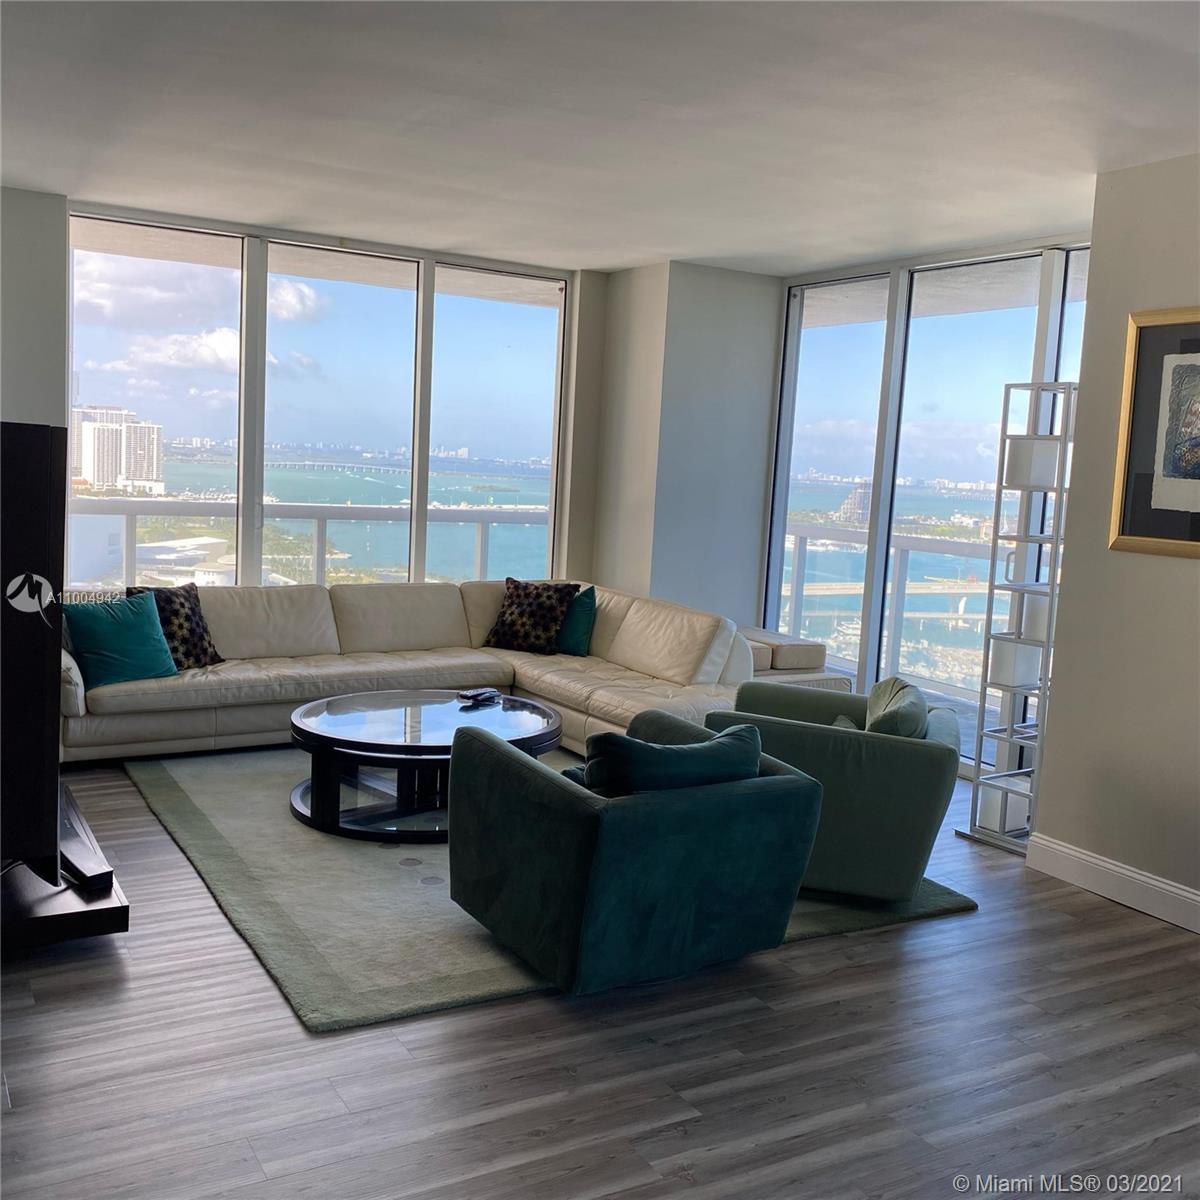 Spectacular Apartment overlooking the Biscayne Bay, Bayfront Park, Miami Port, South Beach, Key Bisc